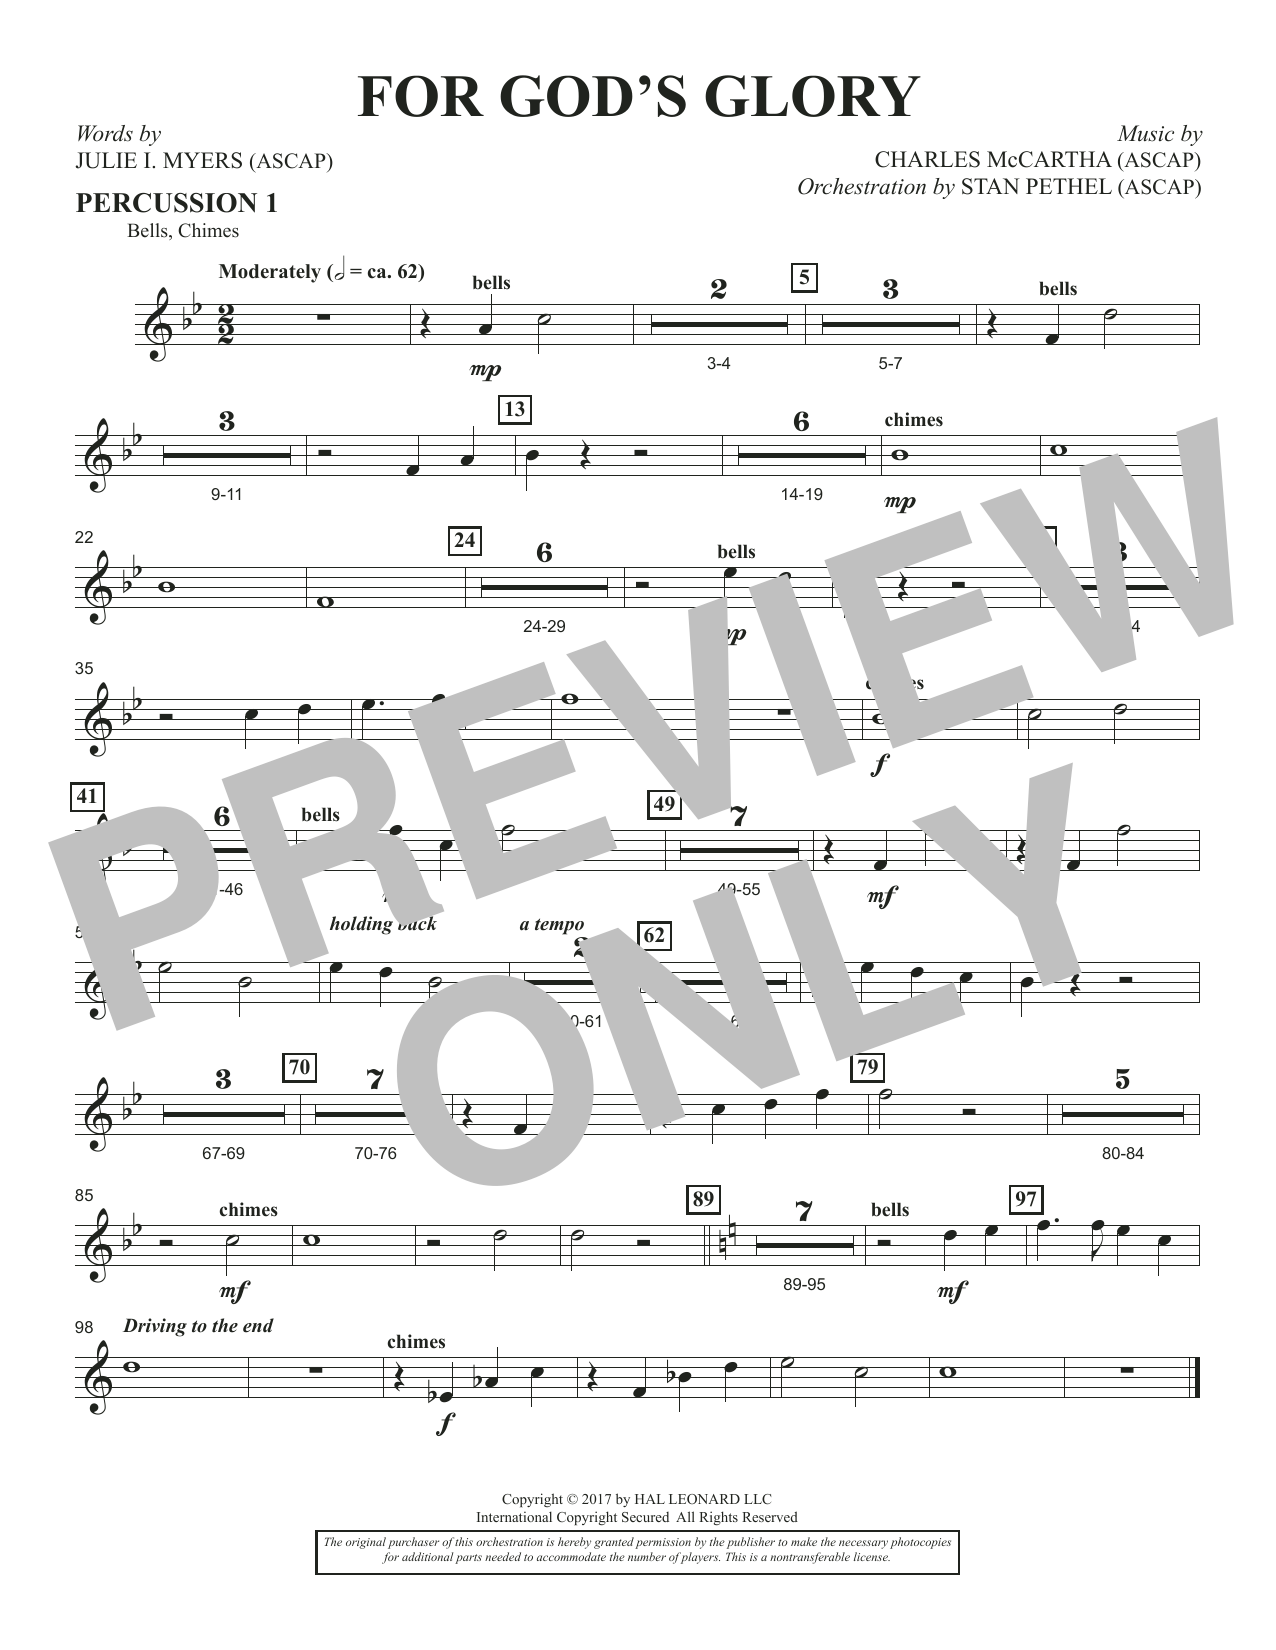 Charles McCartha For God's Glory - Percussion 1 sheet music notes and chords. Download Printable PDF.